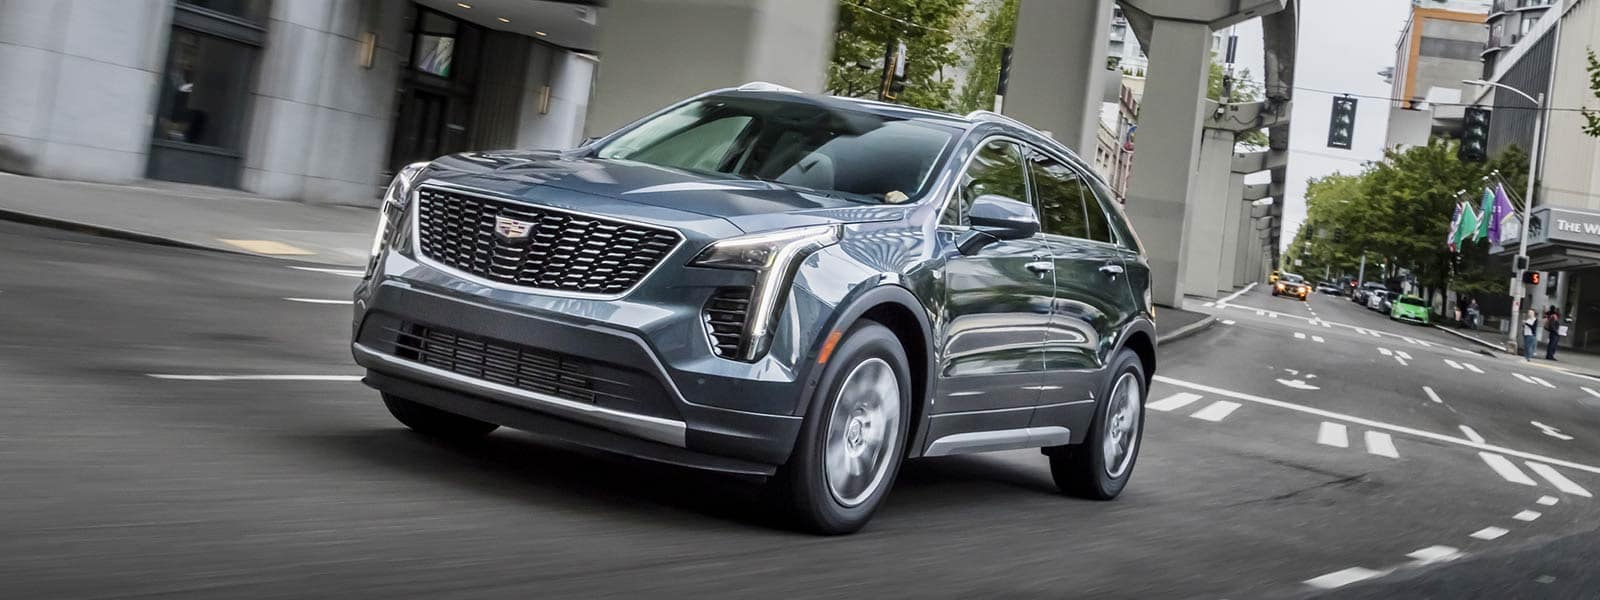 Buy or lease 2021 Cadillac XT4 in Thornhill Ontario